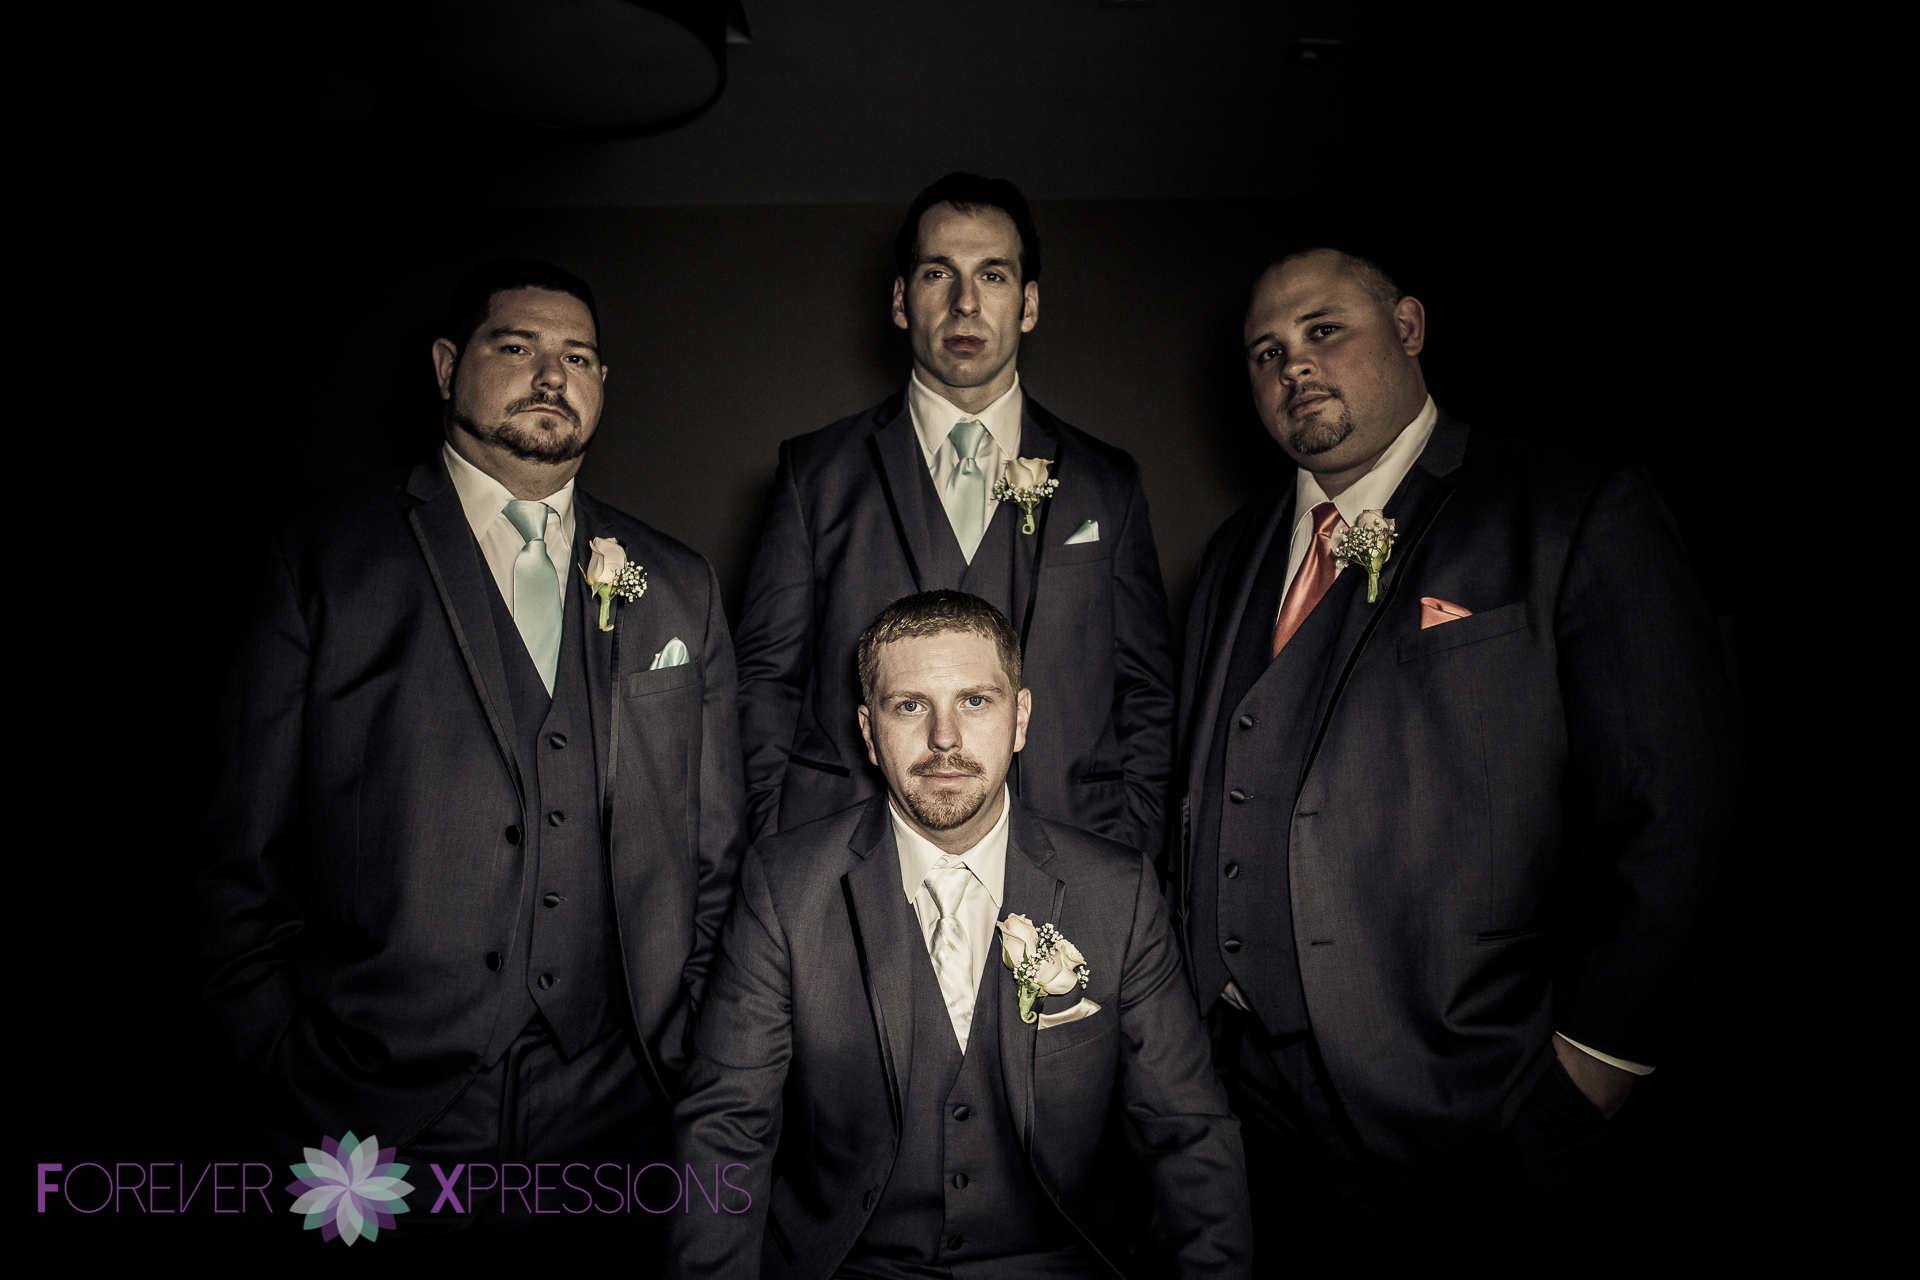 Forever_Xpressions_Wedding_Photography_Monteverde_Bella_Collina-30060